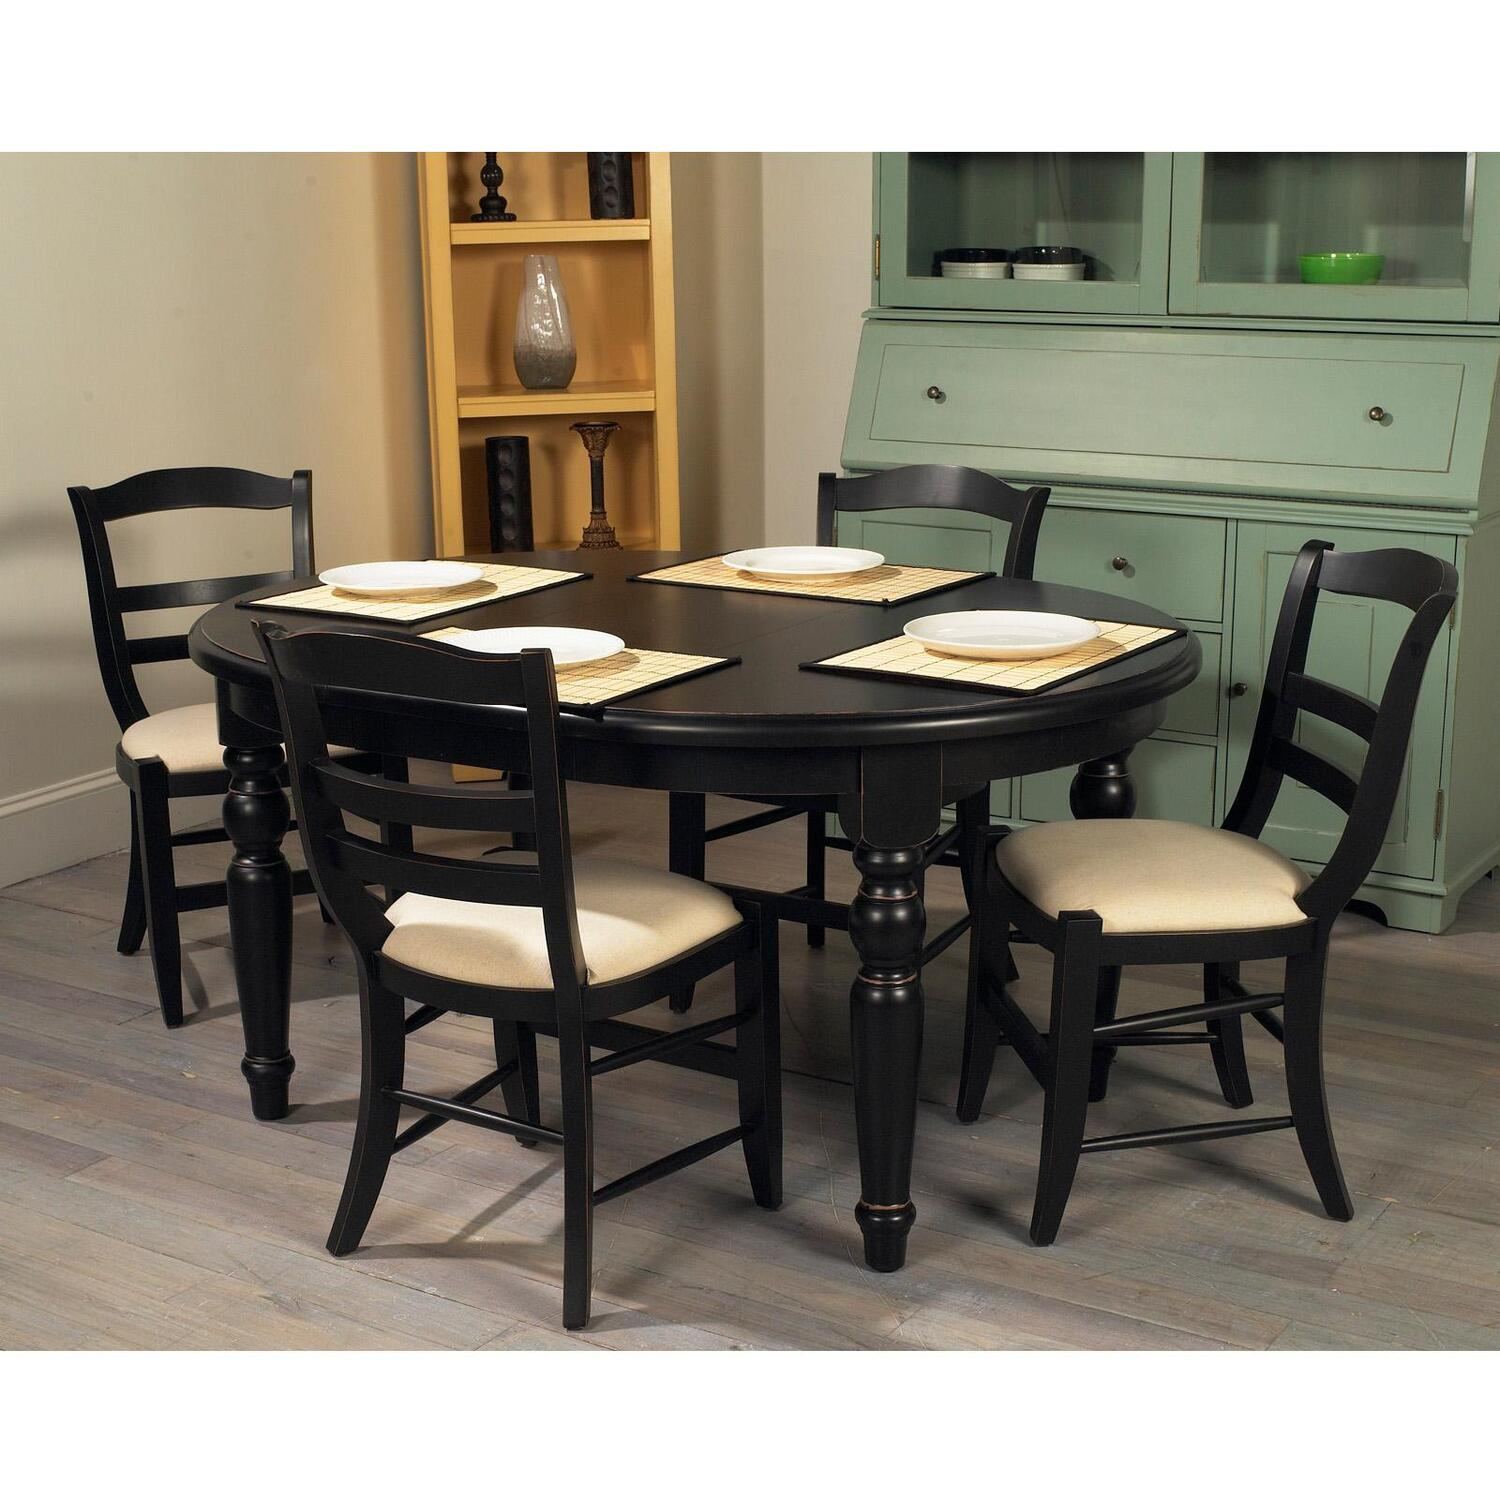 dining table dress oval dining table. Black Bedroom Furniture Sets. Home Design Ideas